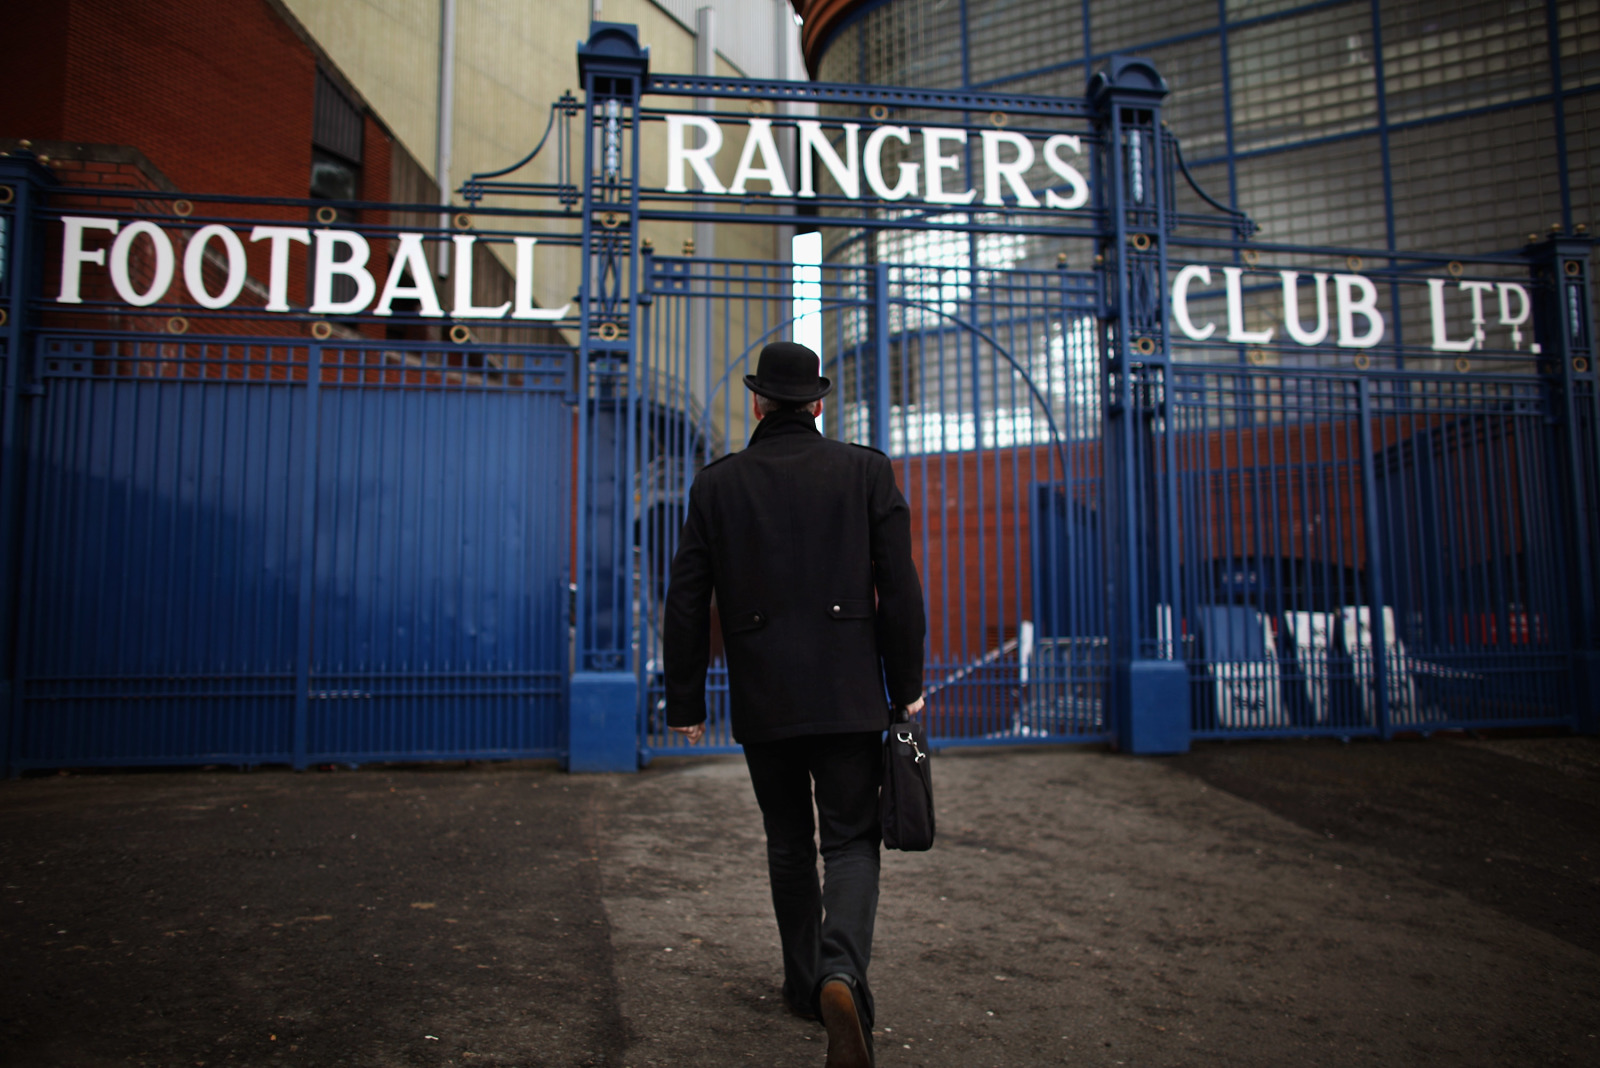 Chris Sutton makes bold prediction about Rangers' future